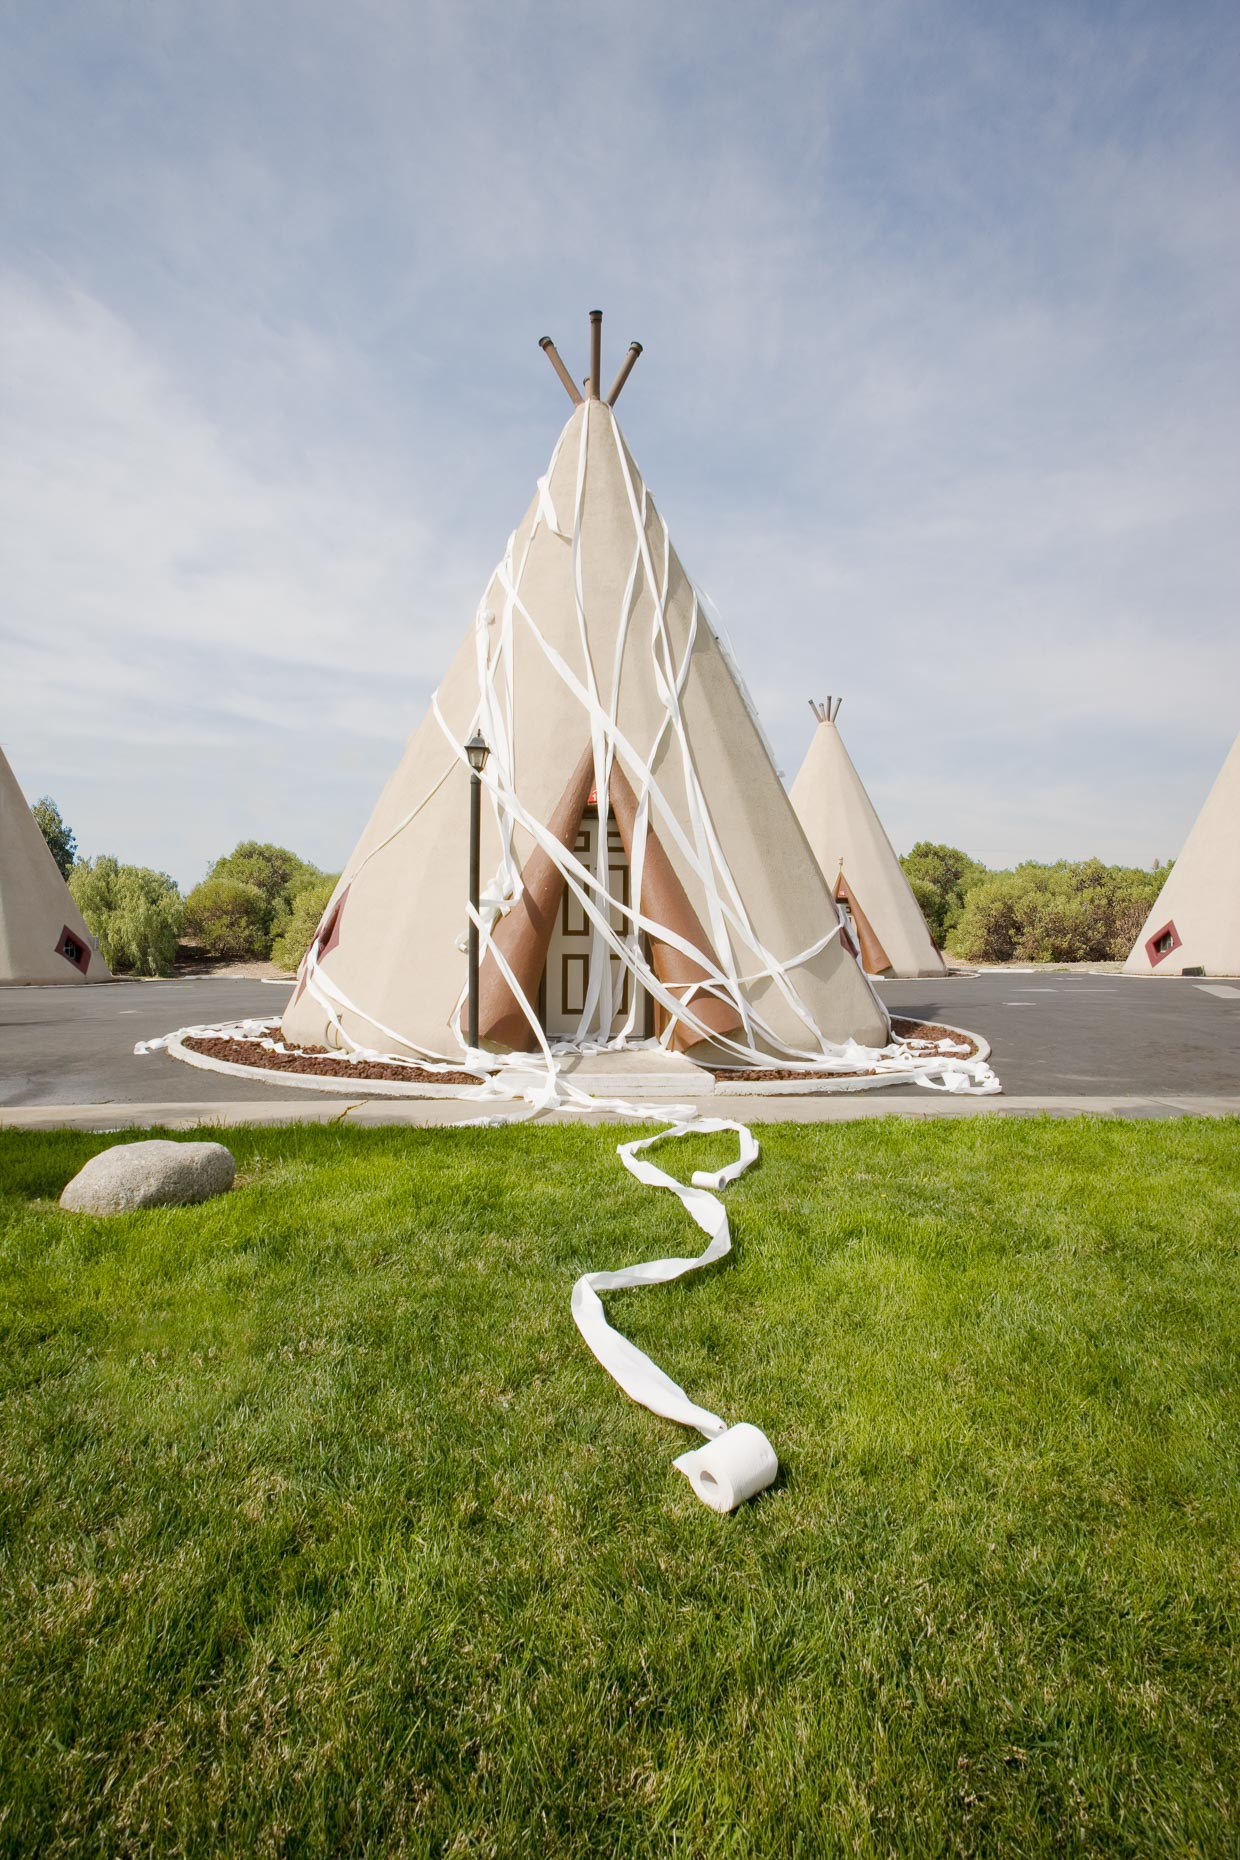 Toilet paper is strewn over teepee shaped motel unit building. David Zaitz.